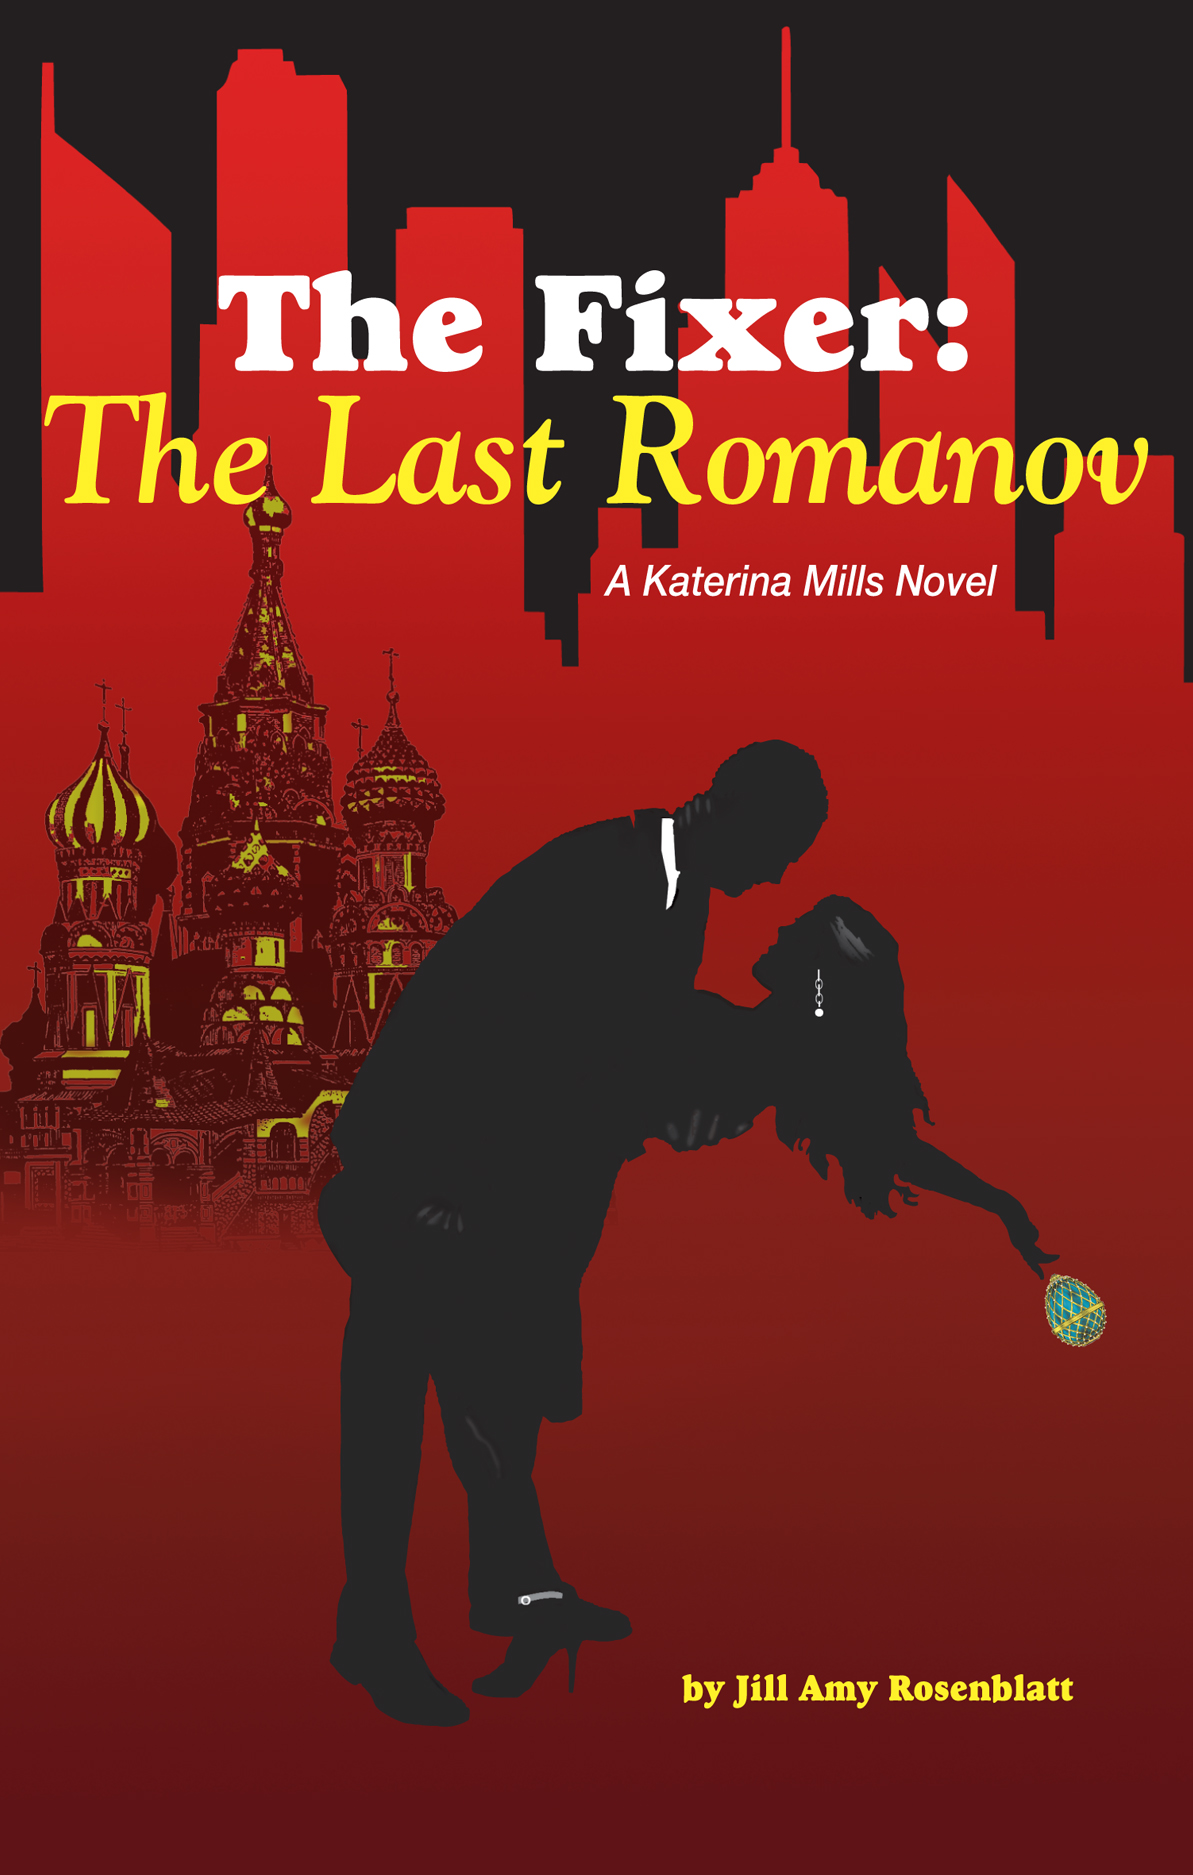 The Fixer: The Last Romanov by Jill Amy Rosenblatt